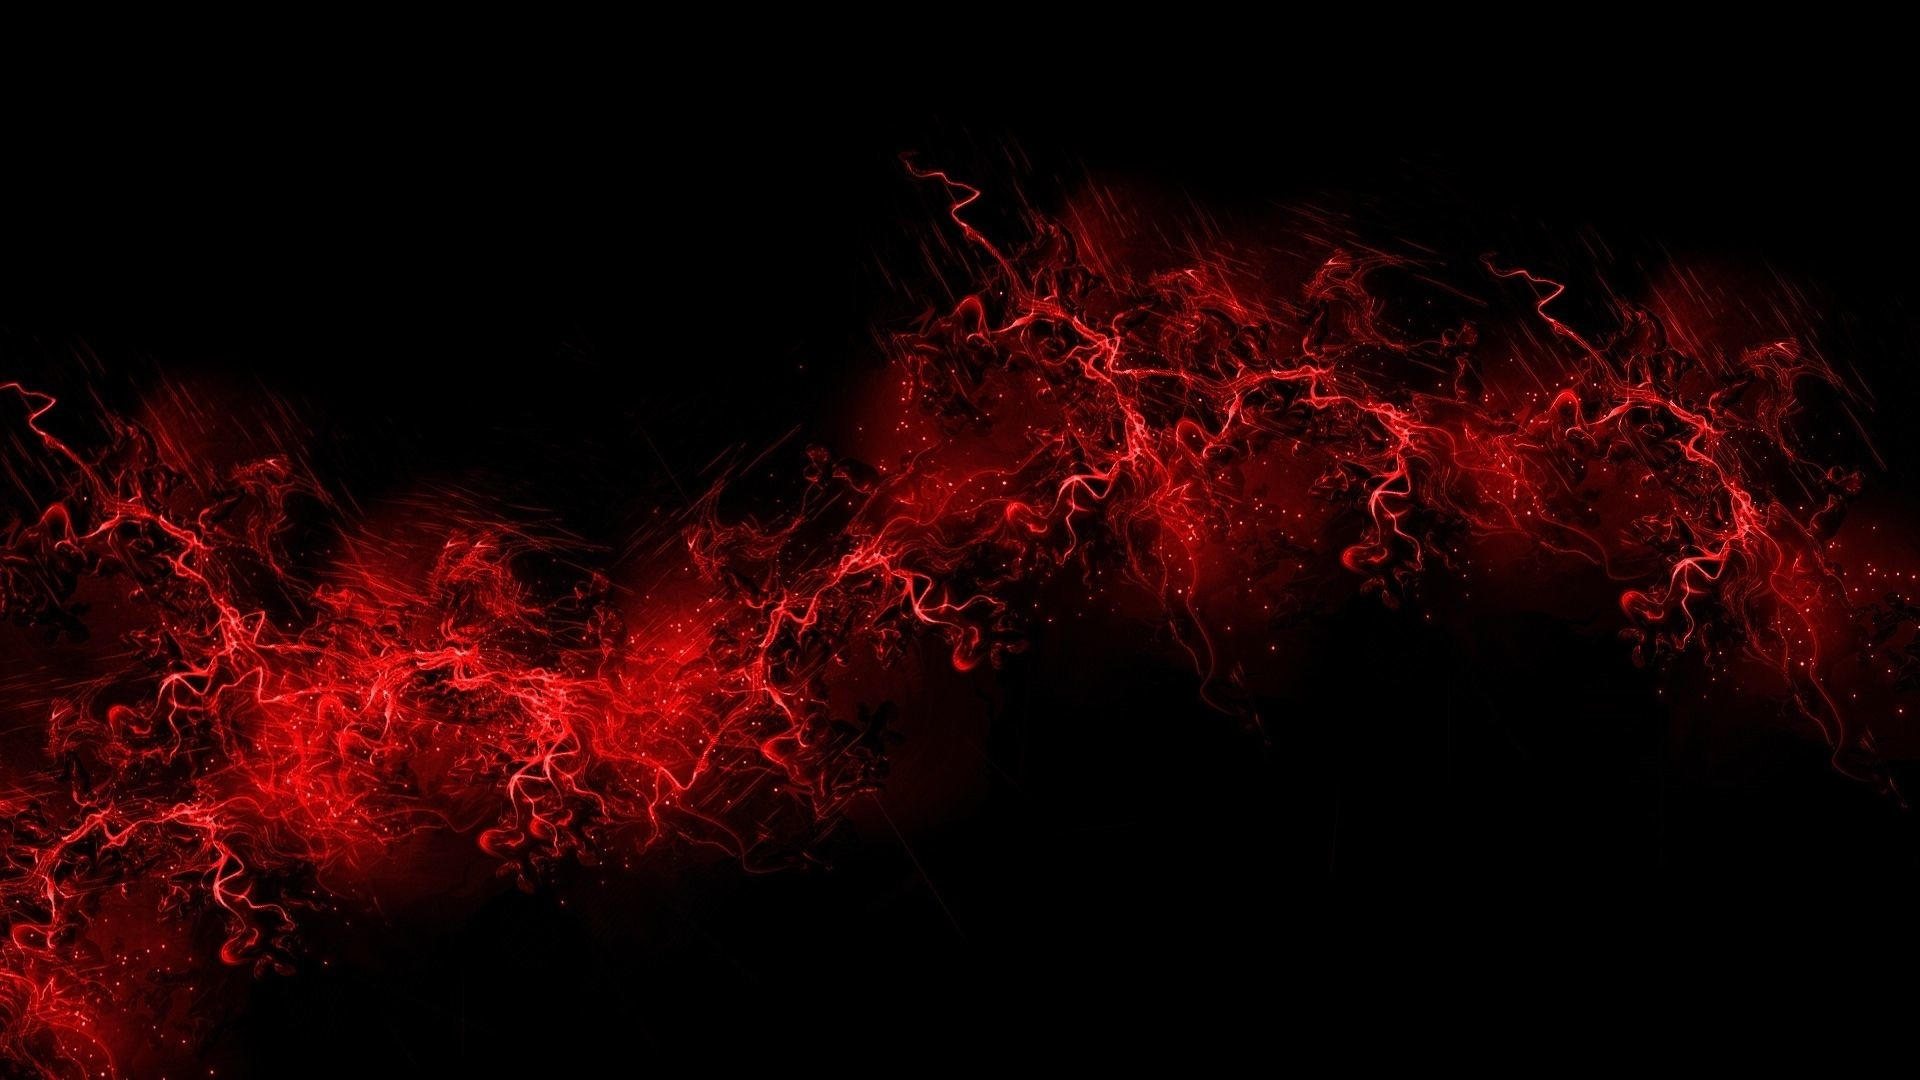 Res: 1920x1080, HD background images red and black - Full Hd 1080p Abstract Wallpapers  Desktop Backgrounds Hd inside